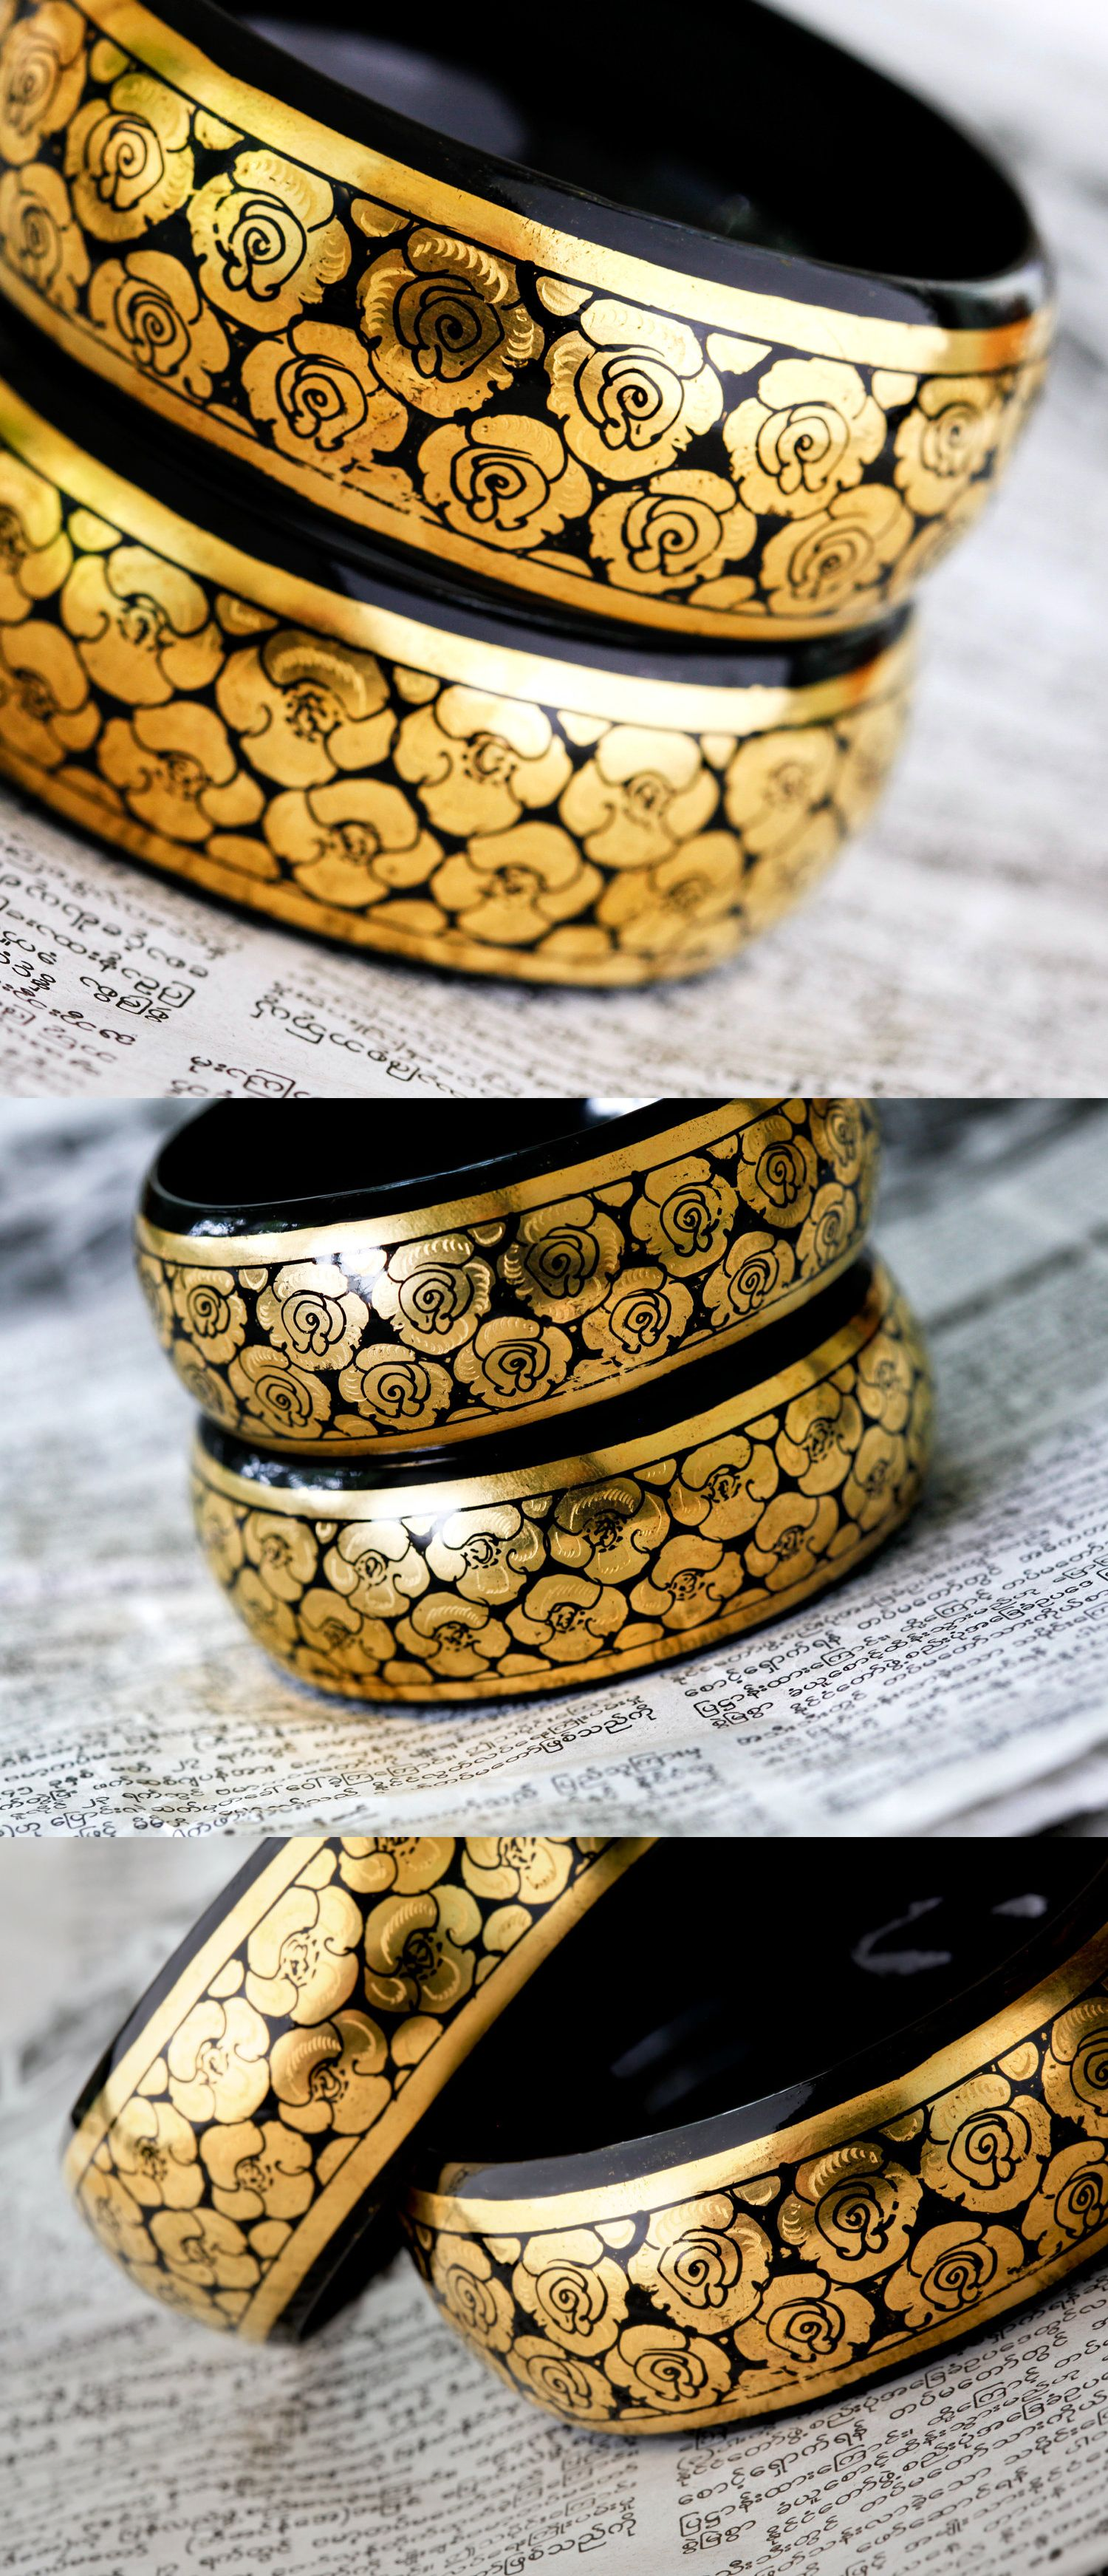 "Delicate hand-etched and hand-painted flowers adorn this pair of black and gold handmade lacquerware bracelets. Each measures 1 1/8"" thick and its inner diameter measures 7 cm, or 2 5/8th inches."